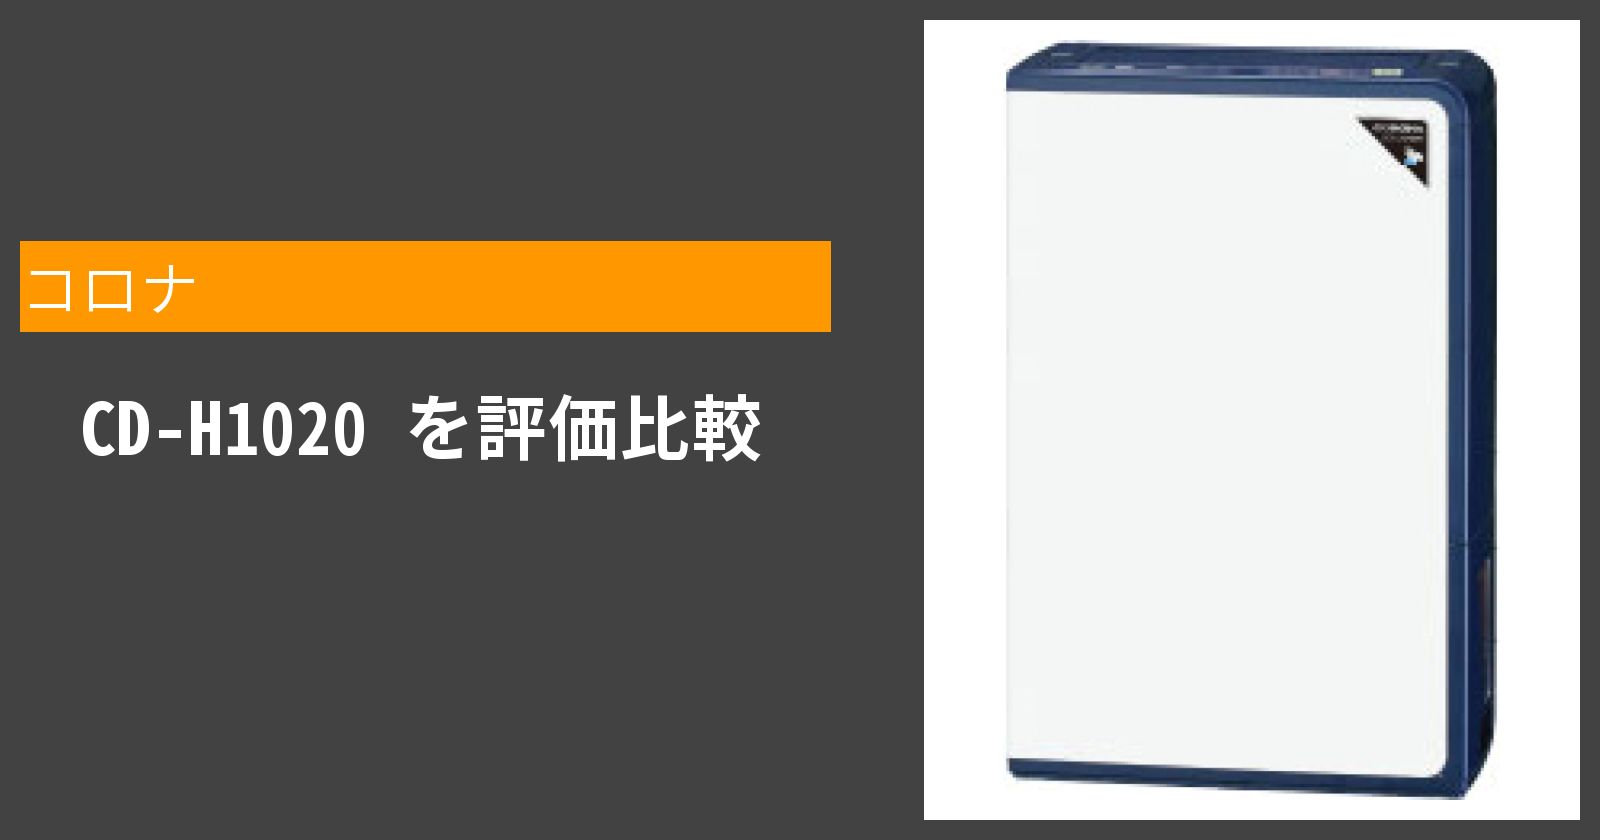 CD-H1020を徹底評価